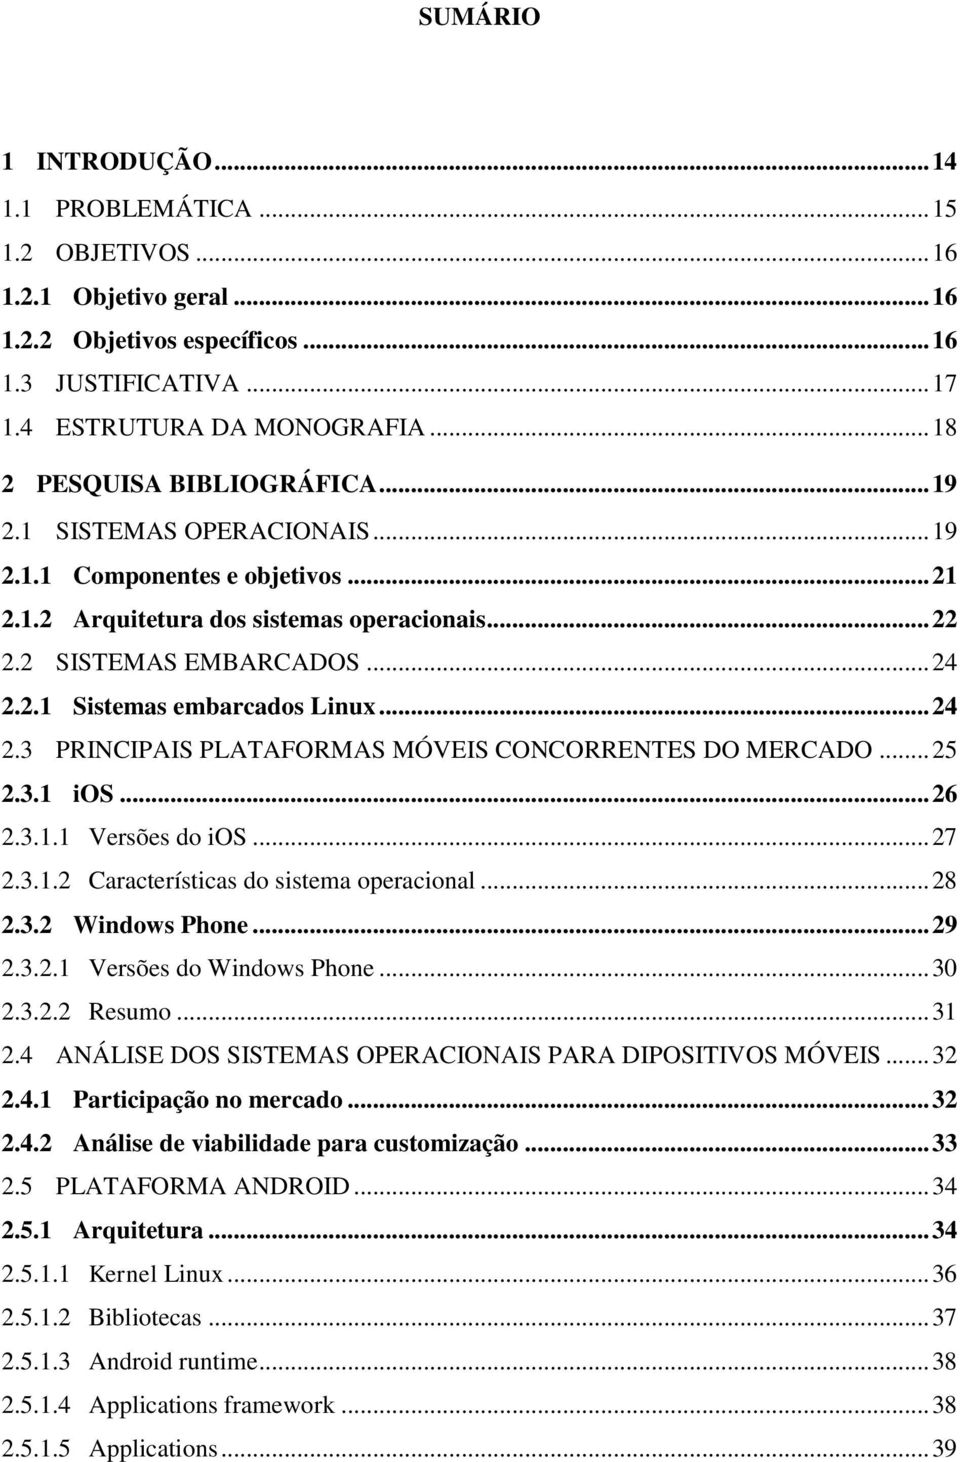 .. 24 2.3 PRINCIPAIS PLATAFORMAS MÓVEIS CONCORRENTES DO MERCADO... 25 2.3.1 ios... 26 2.3.1.1 Versões do ios... 27 2.3.1.2 Características do sistema operacional... 28 2.3.2 Windows Phone... 29 2.3.2.1 Versões do Windows Phone.